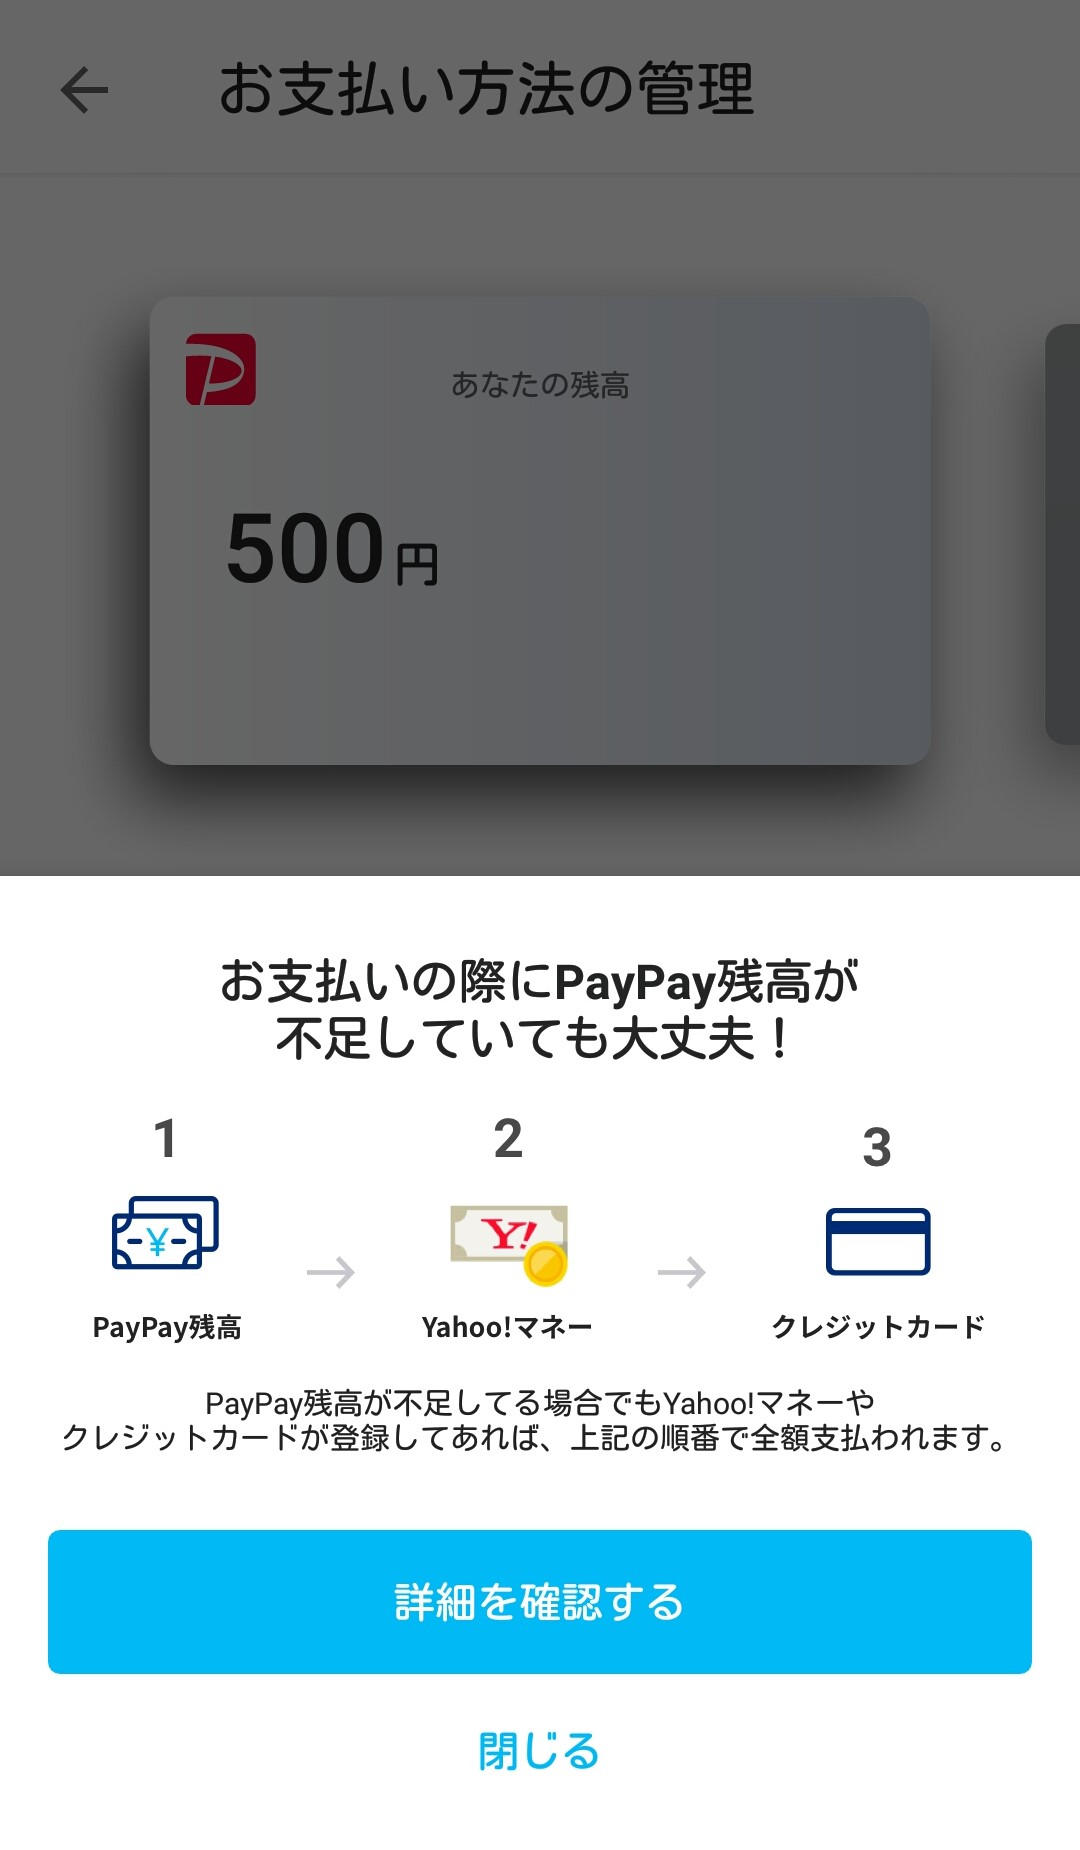 paypay1811124-4